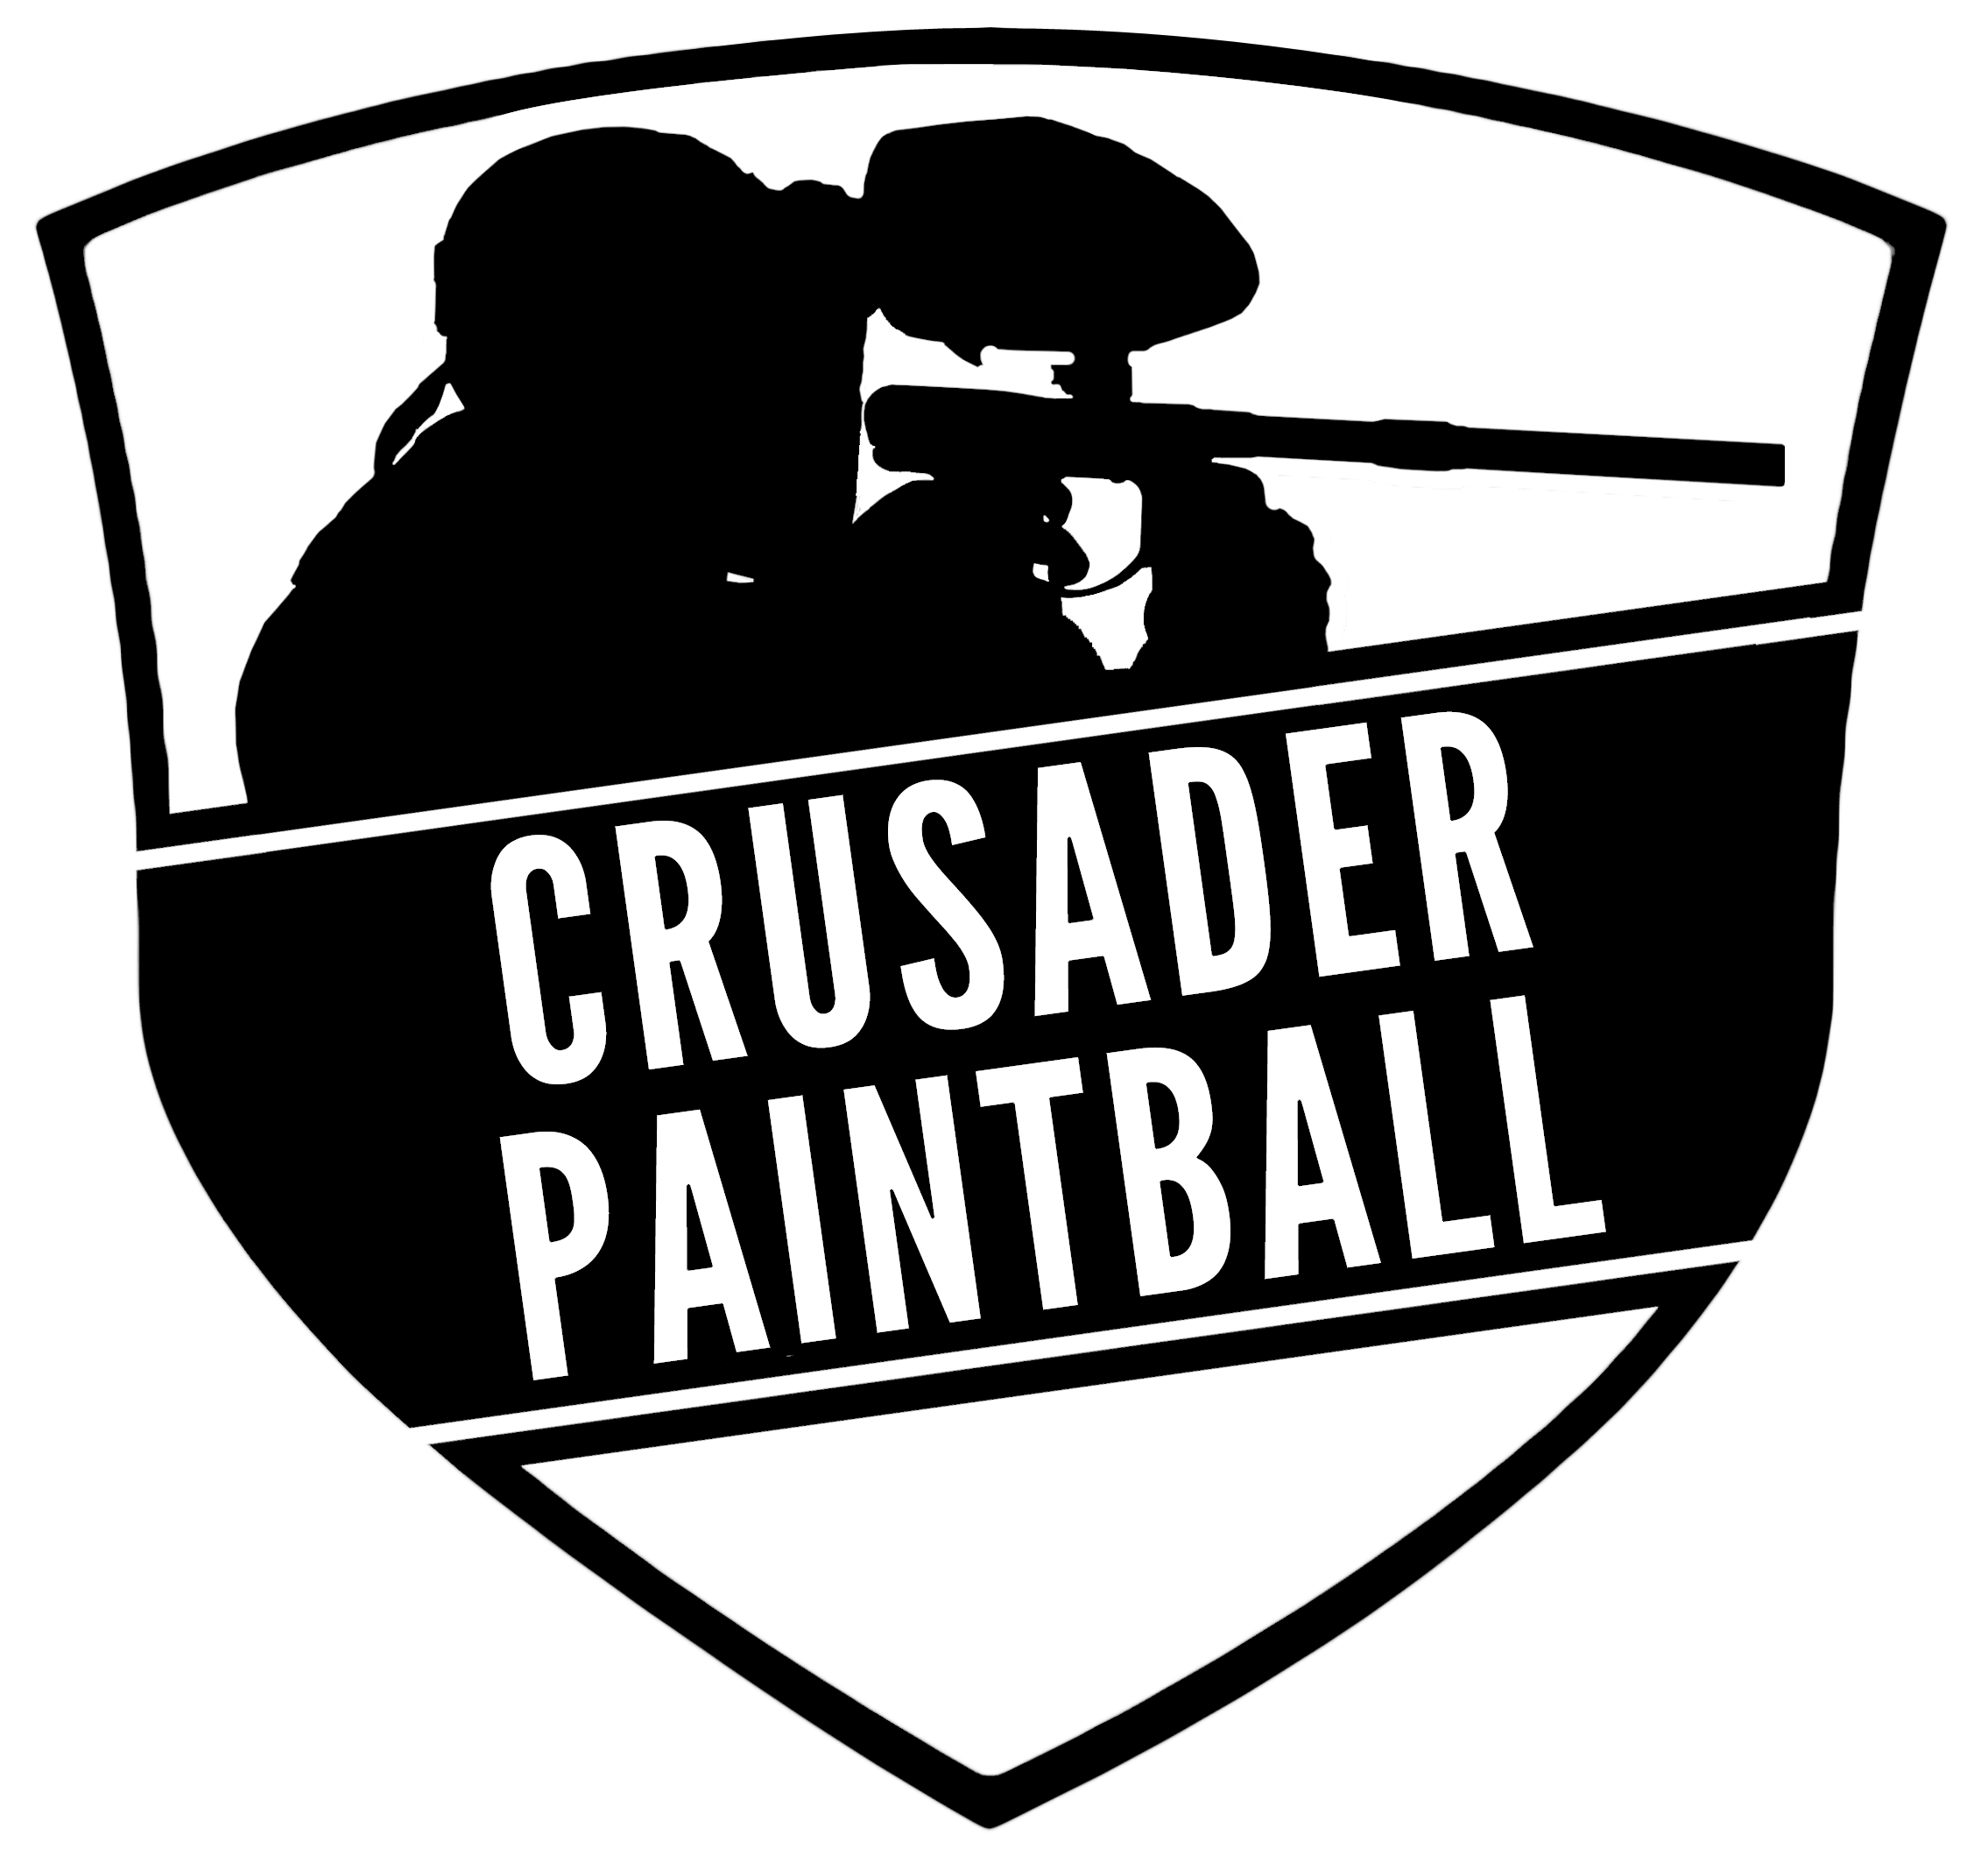 Crusader Paintball